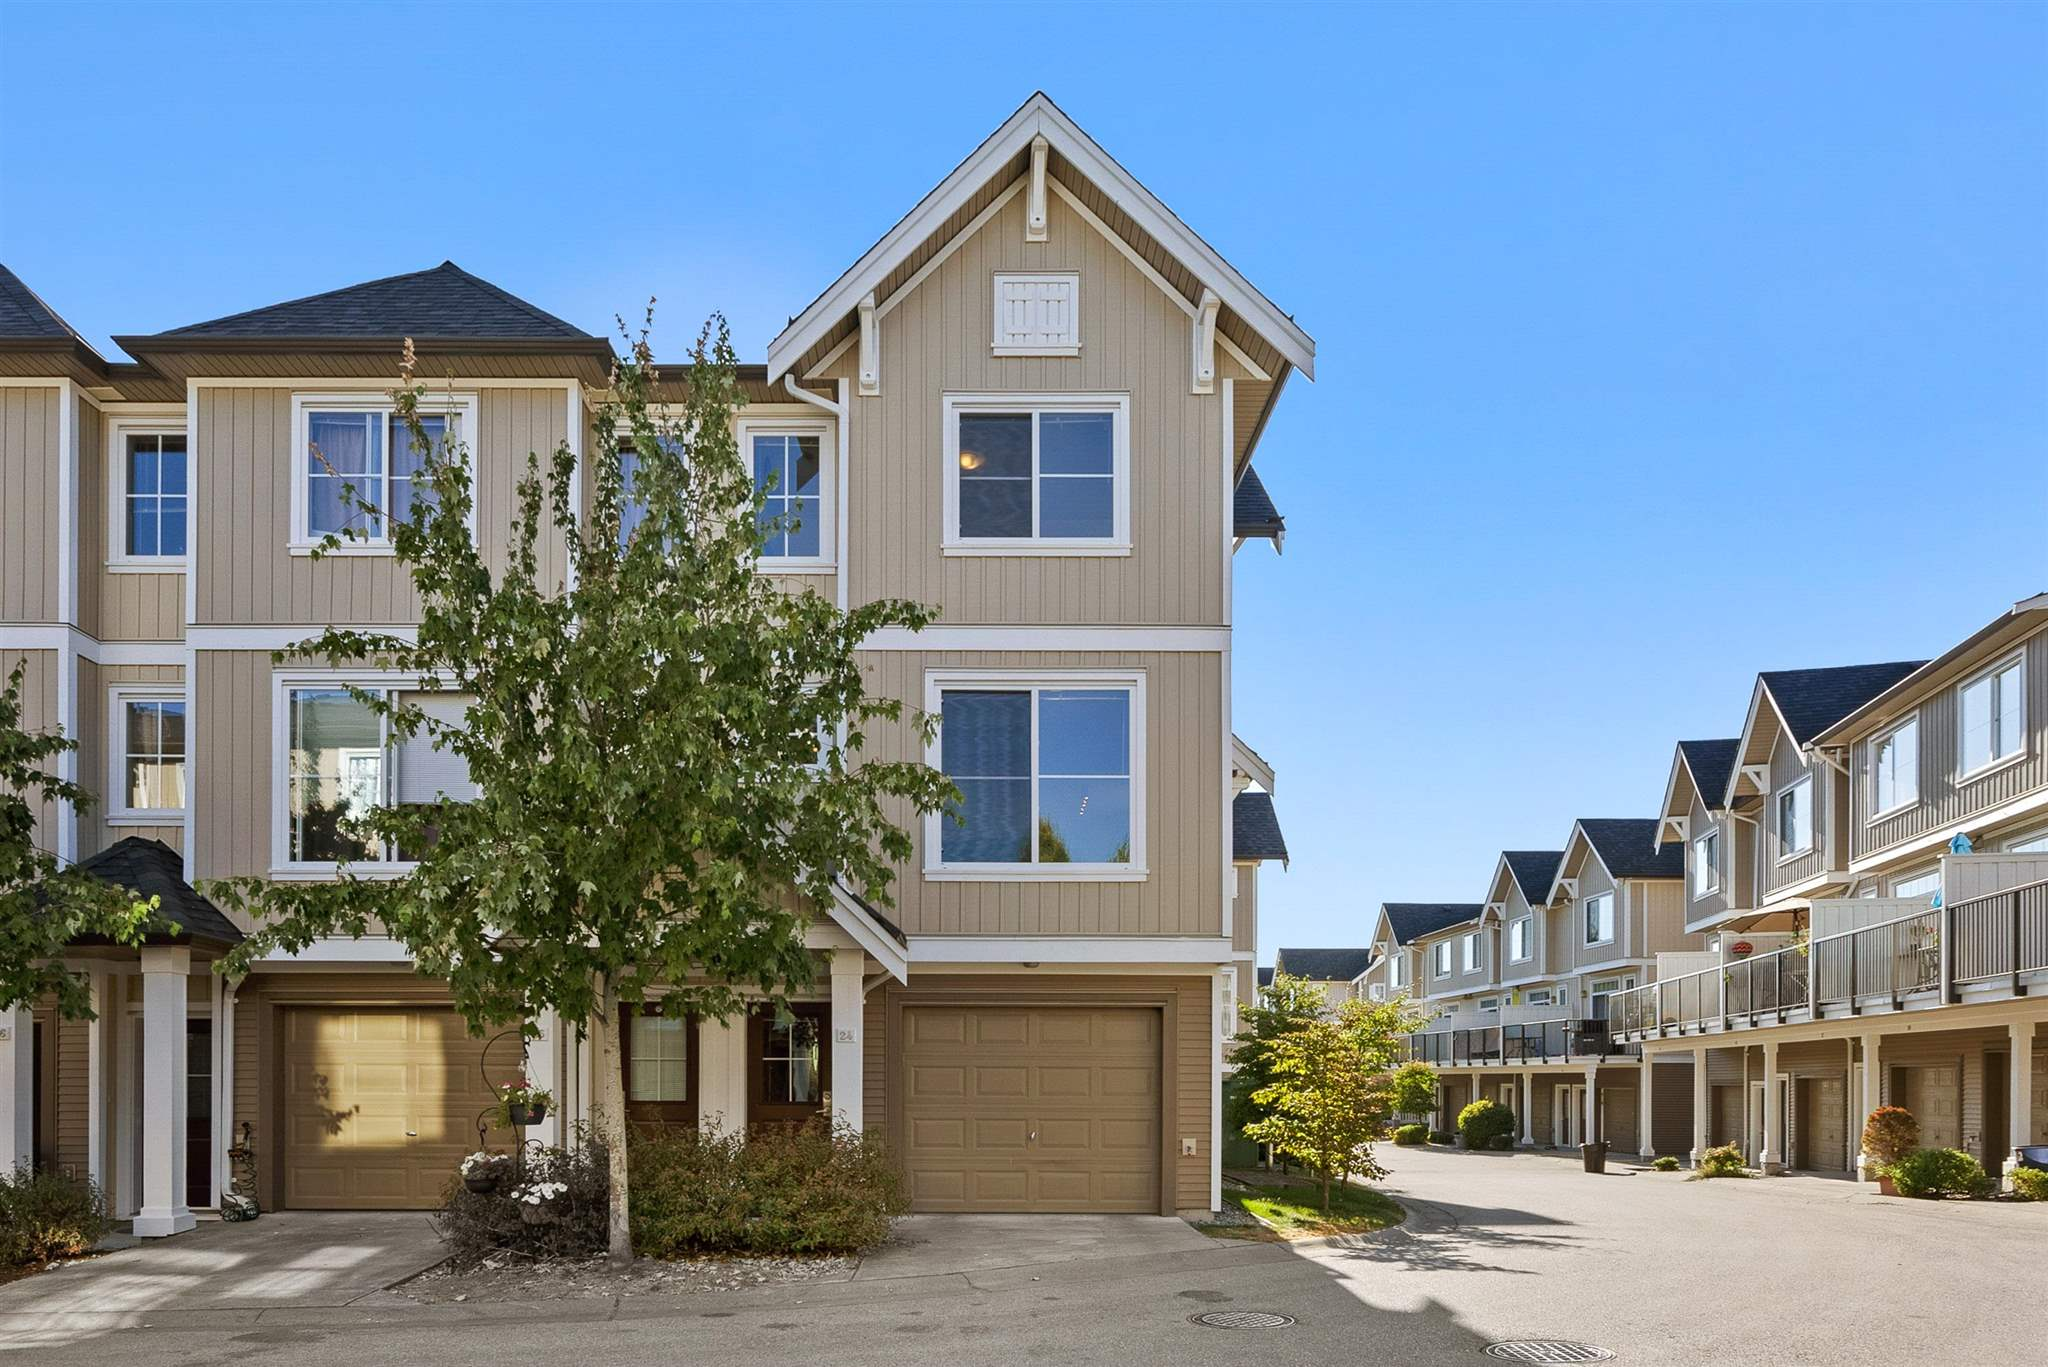 24 31032 WESTRIDGE PLACE - Abbotsford West Townhouse for sale, 2 Bedrooms (R2604385) - #1